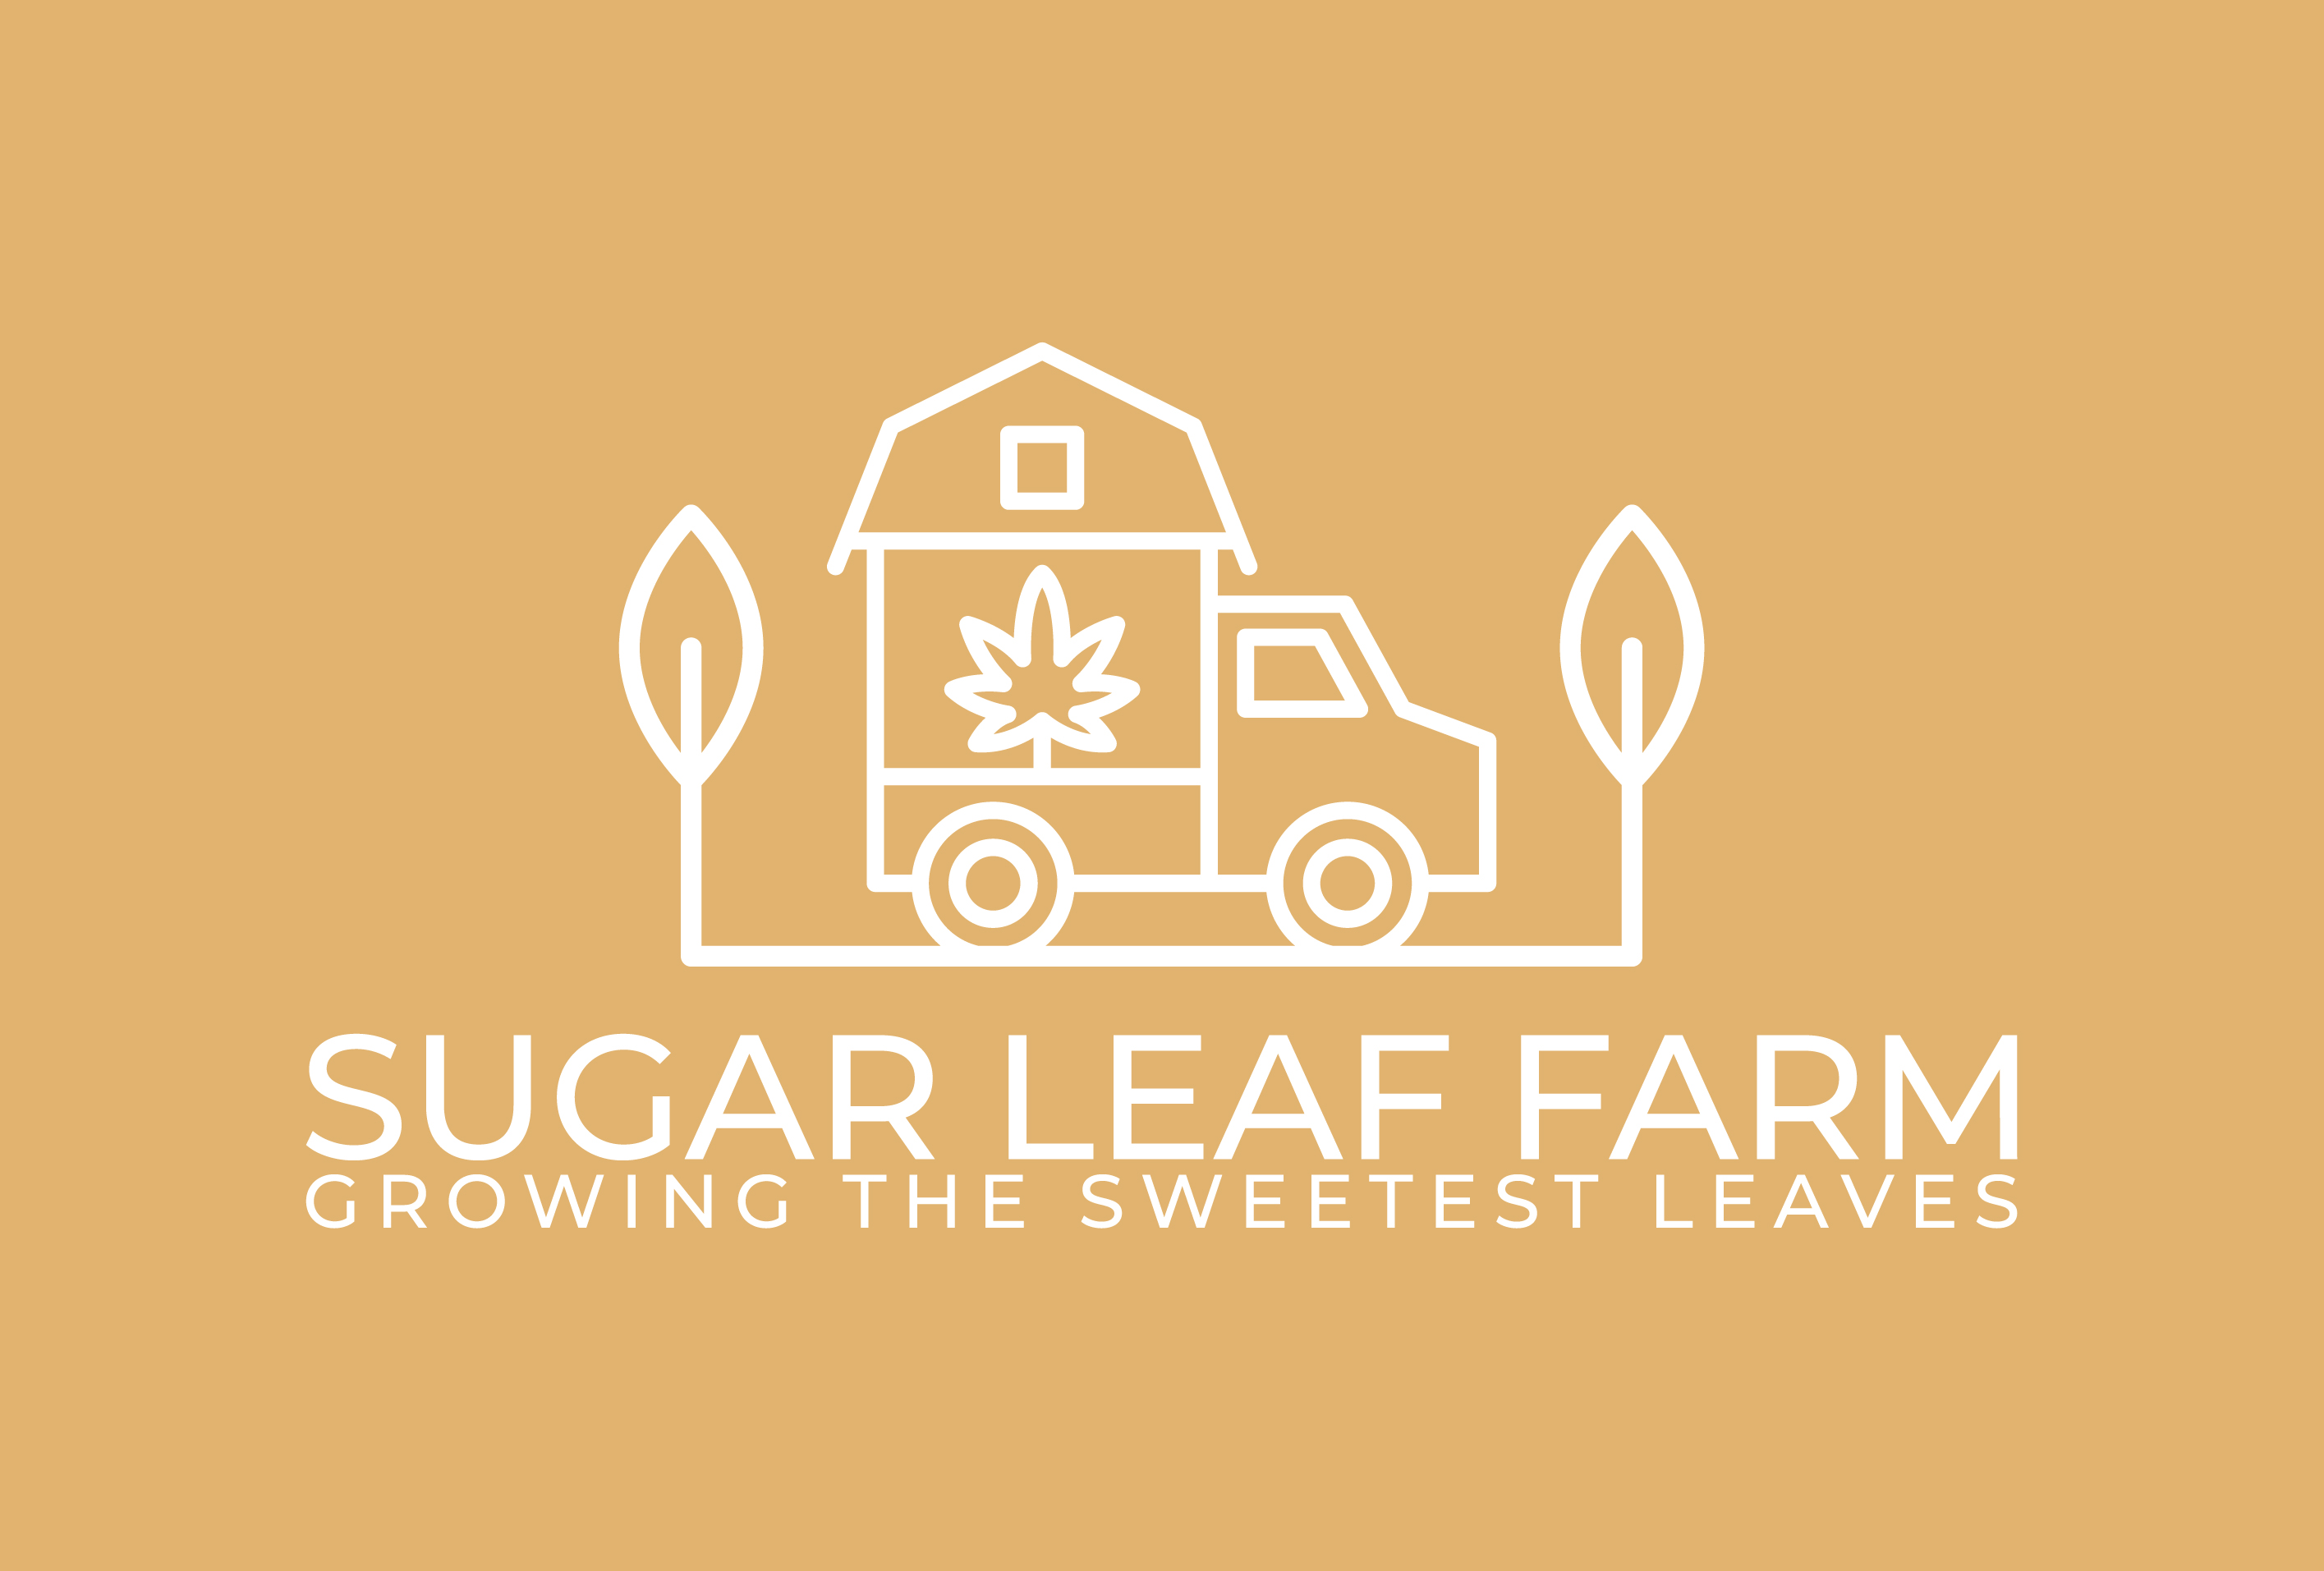 ab_Sugar Leaf Farm4-01.jpg